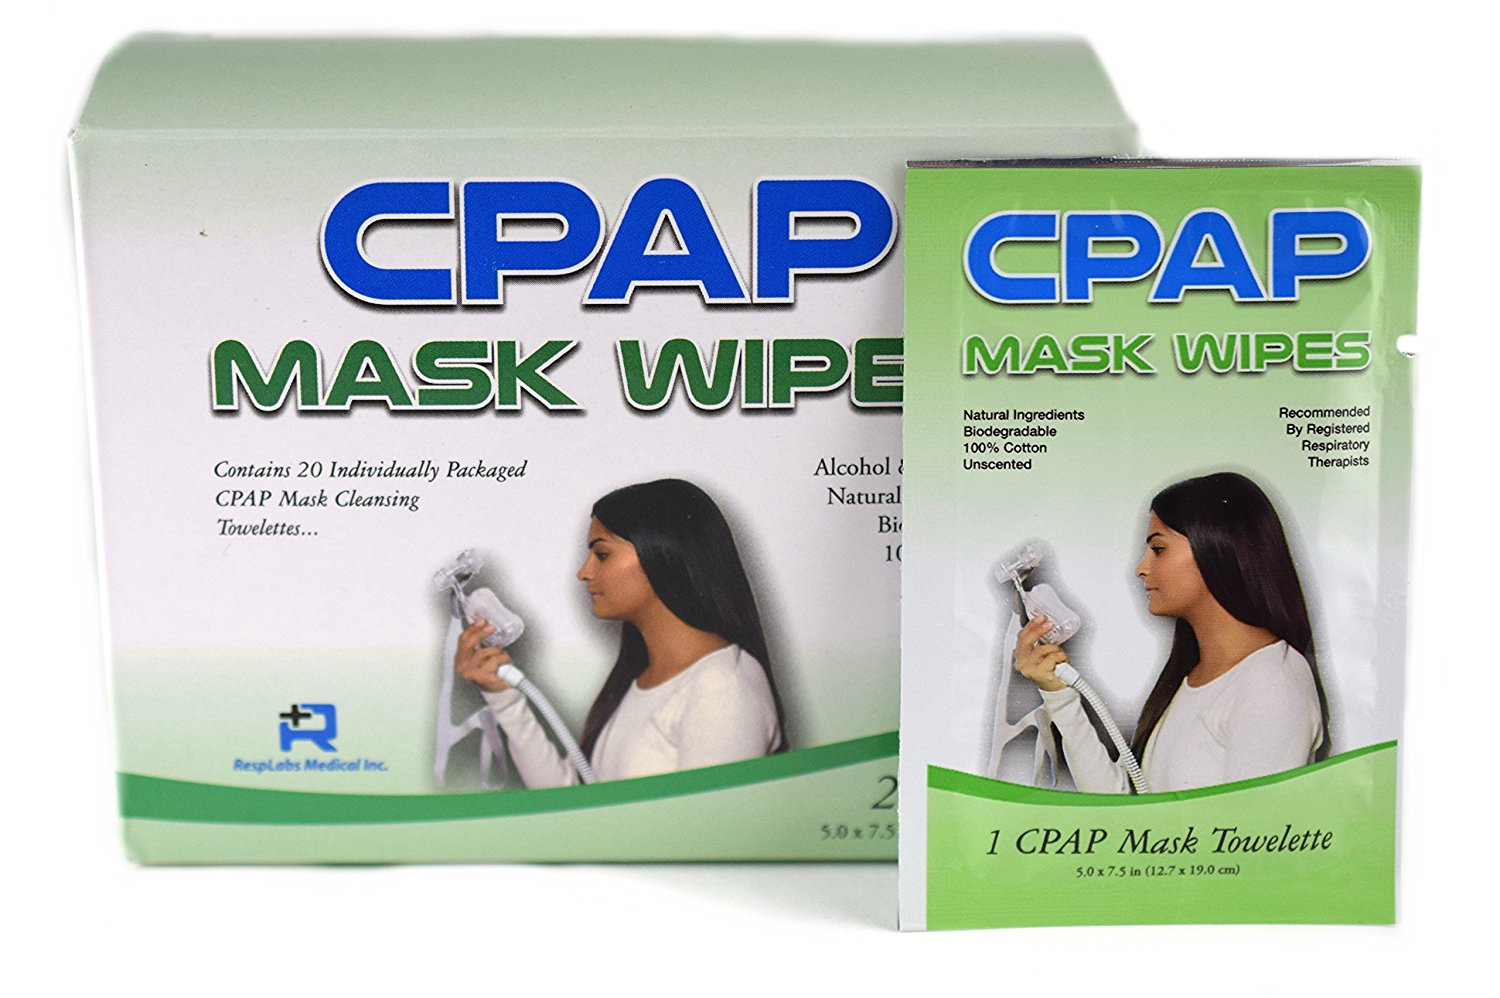 RespLabs Medical CPAP Wipes For Travel